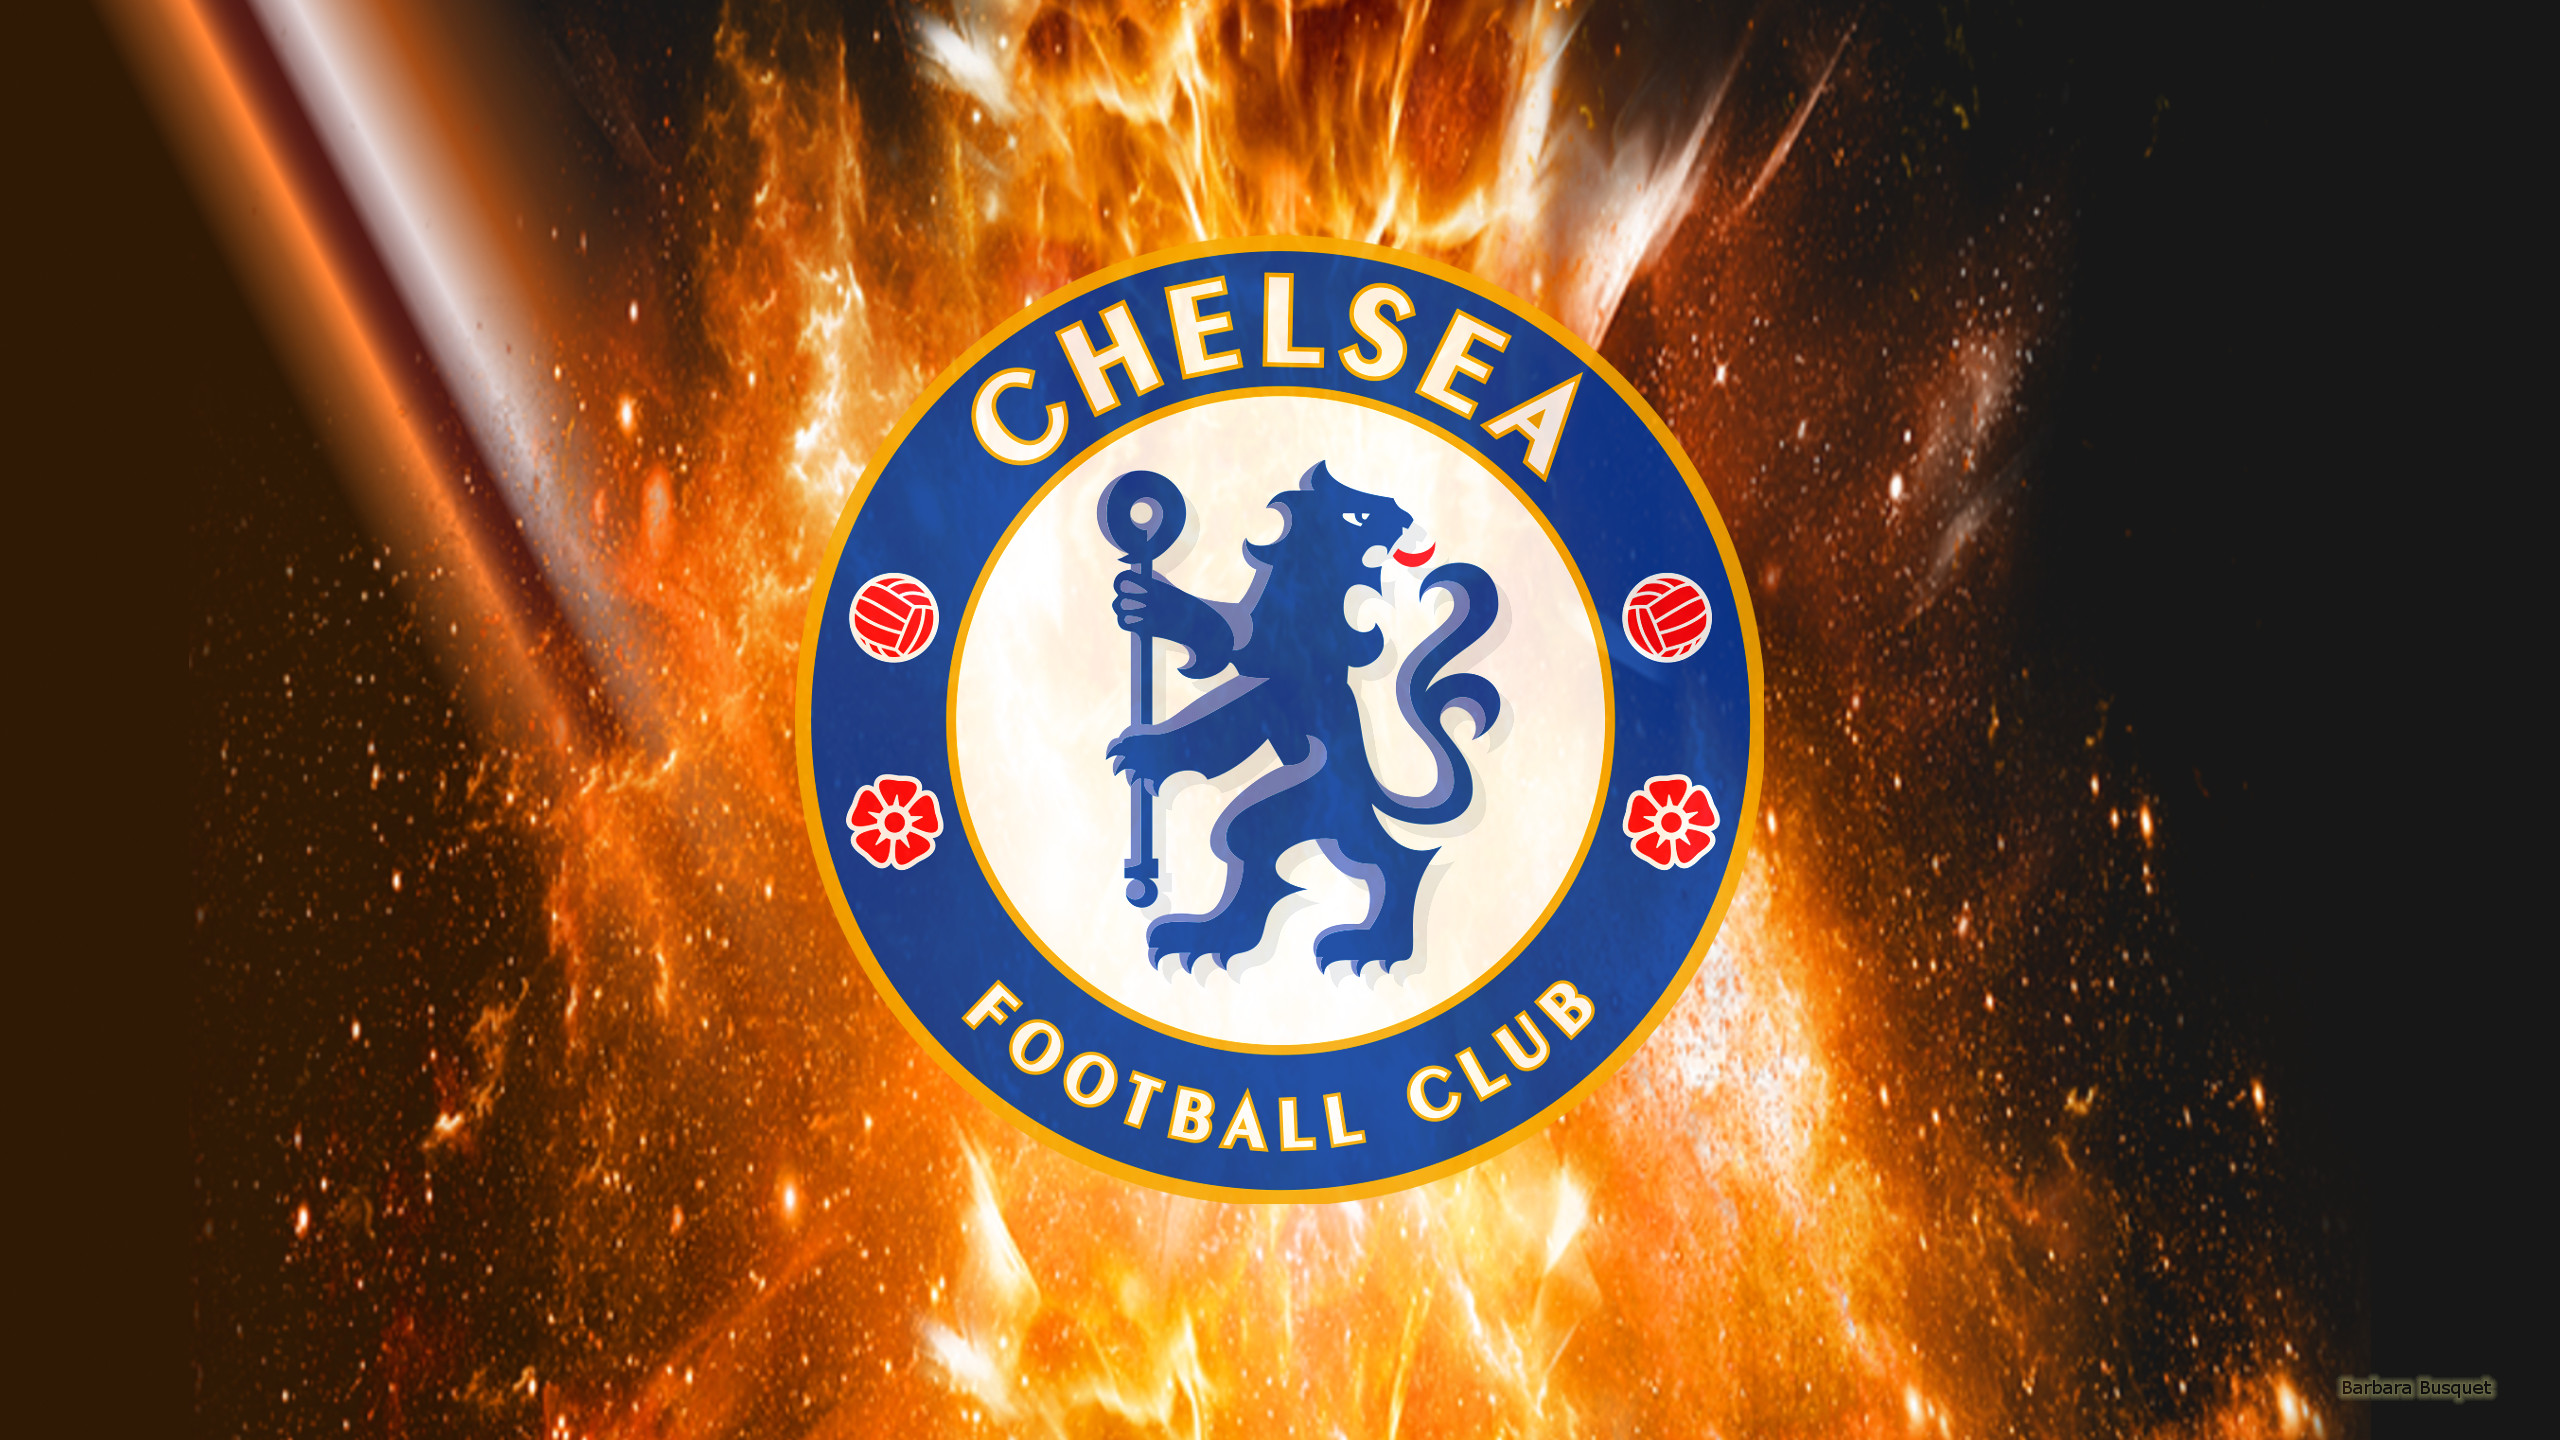 Chelsea F C Hd Wallpaper Background Image 2560x1440 Id 988979 Wallpaper Abyss